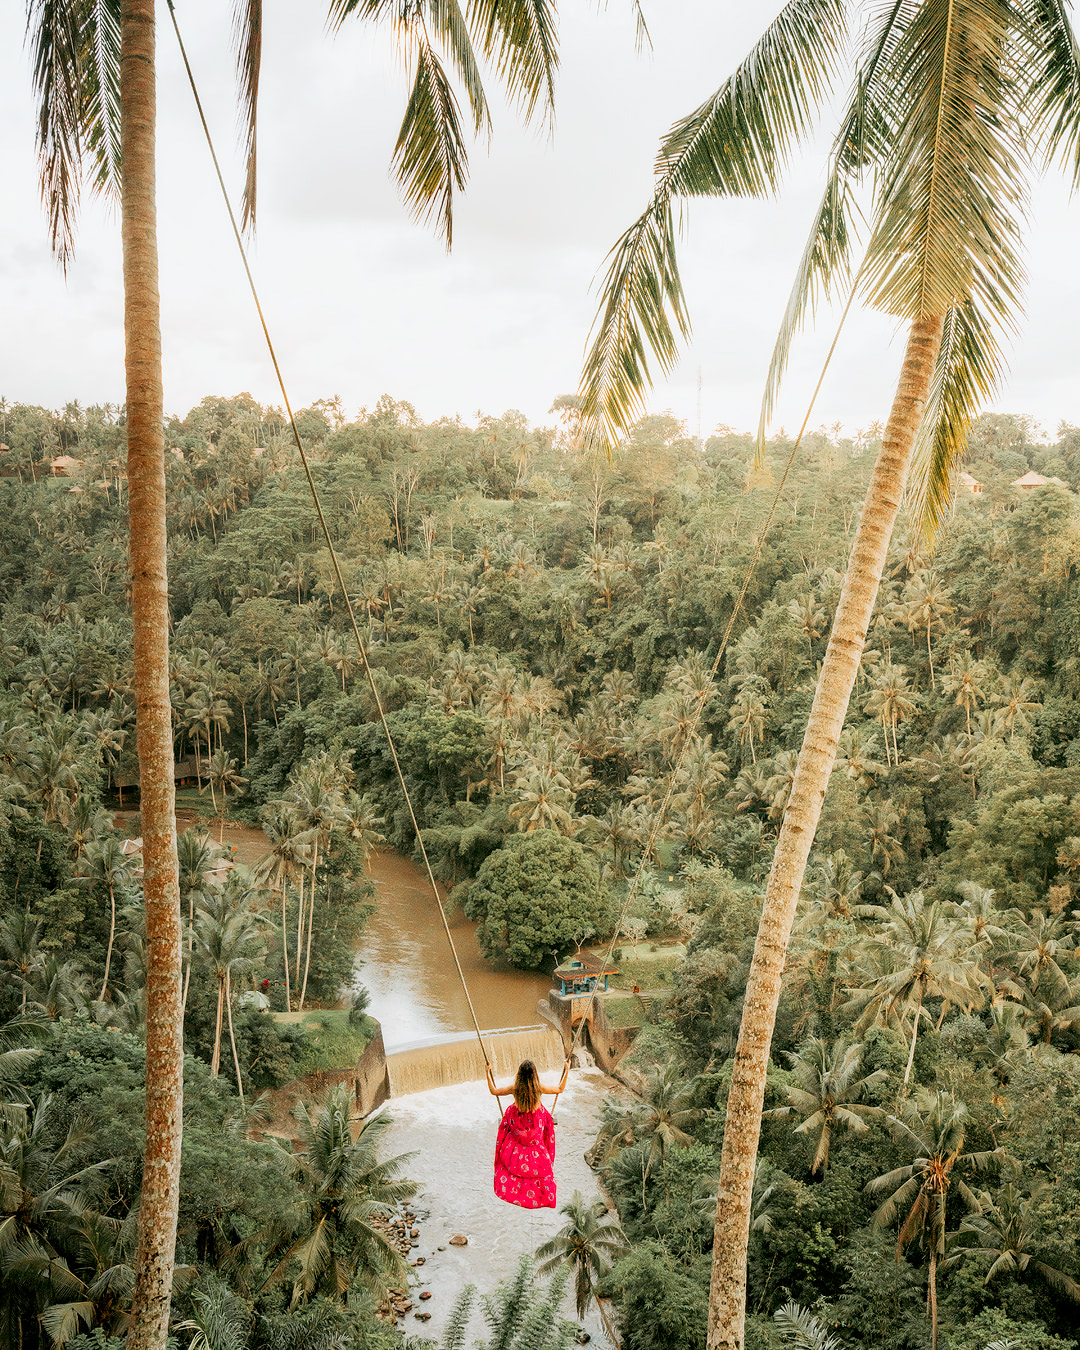 How-to-make-money-while-traveling-the-world-Bali-Swing